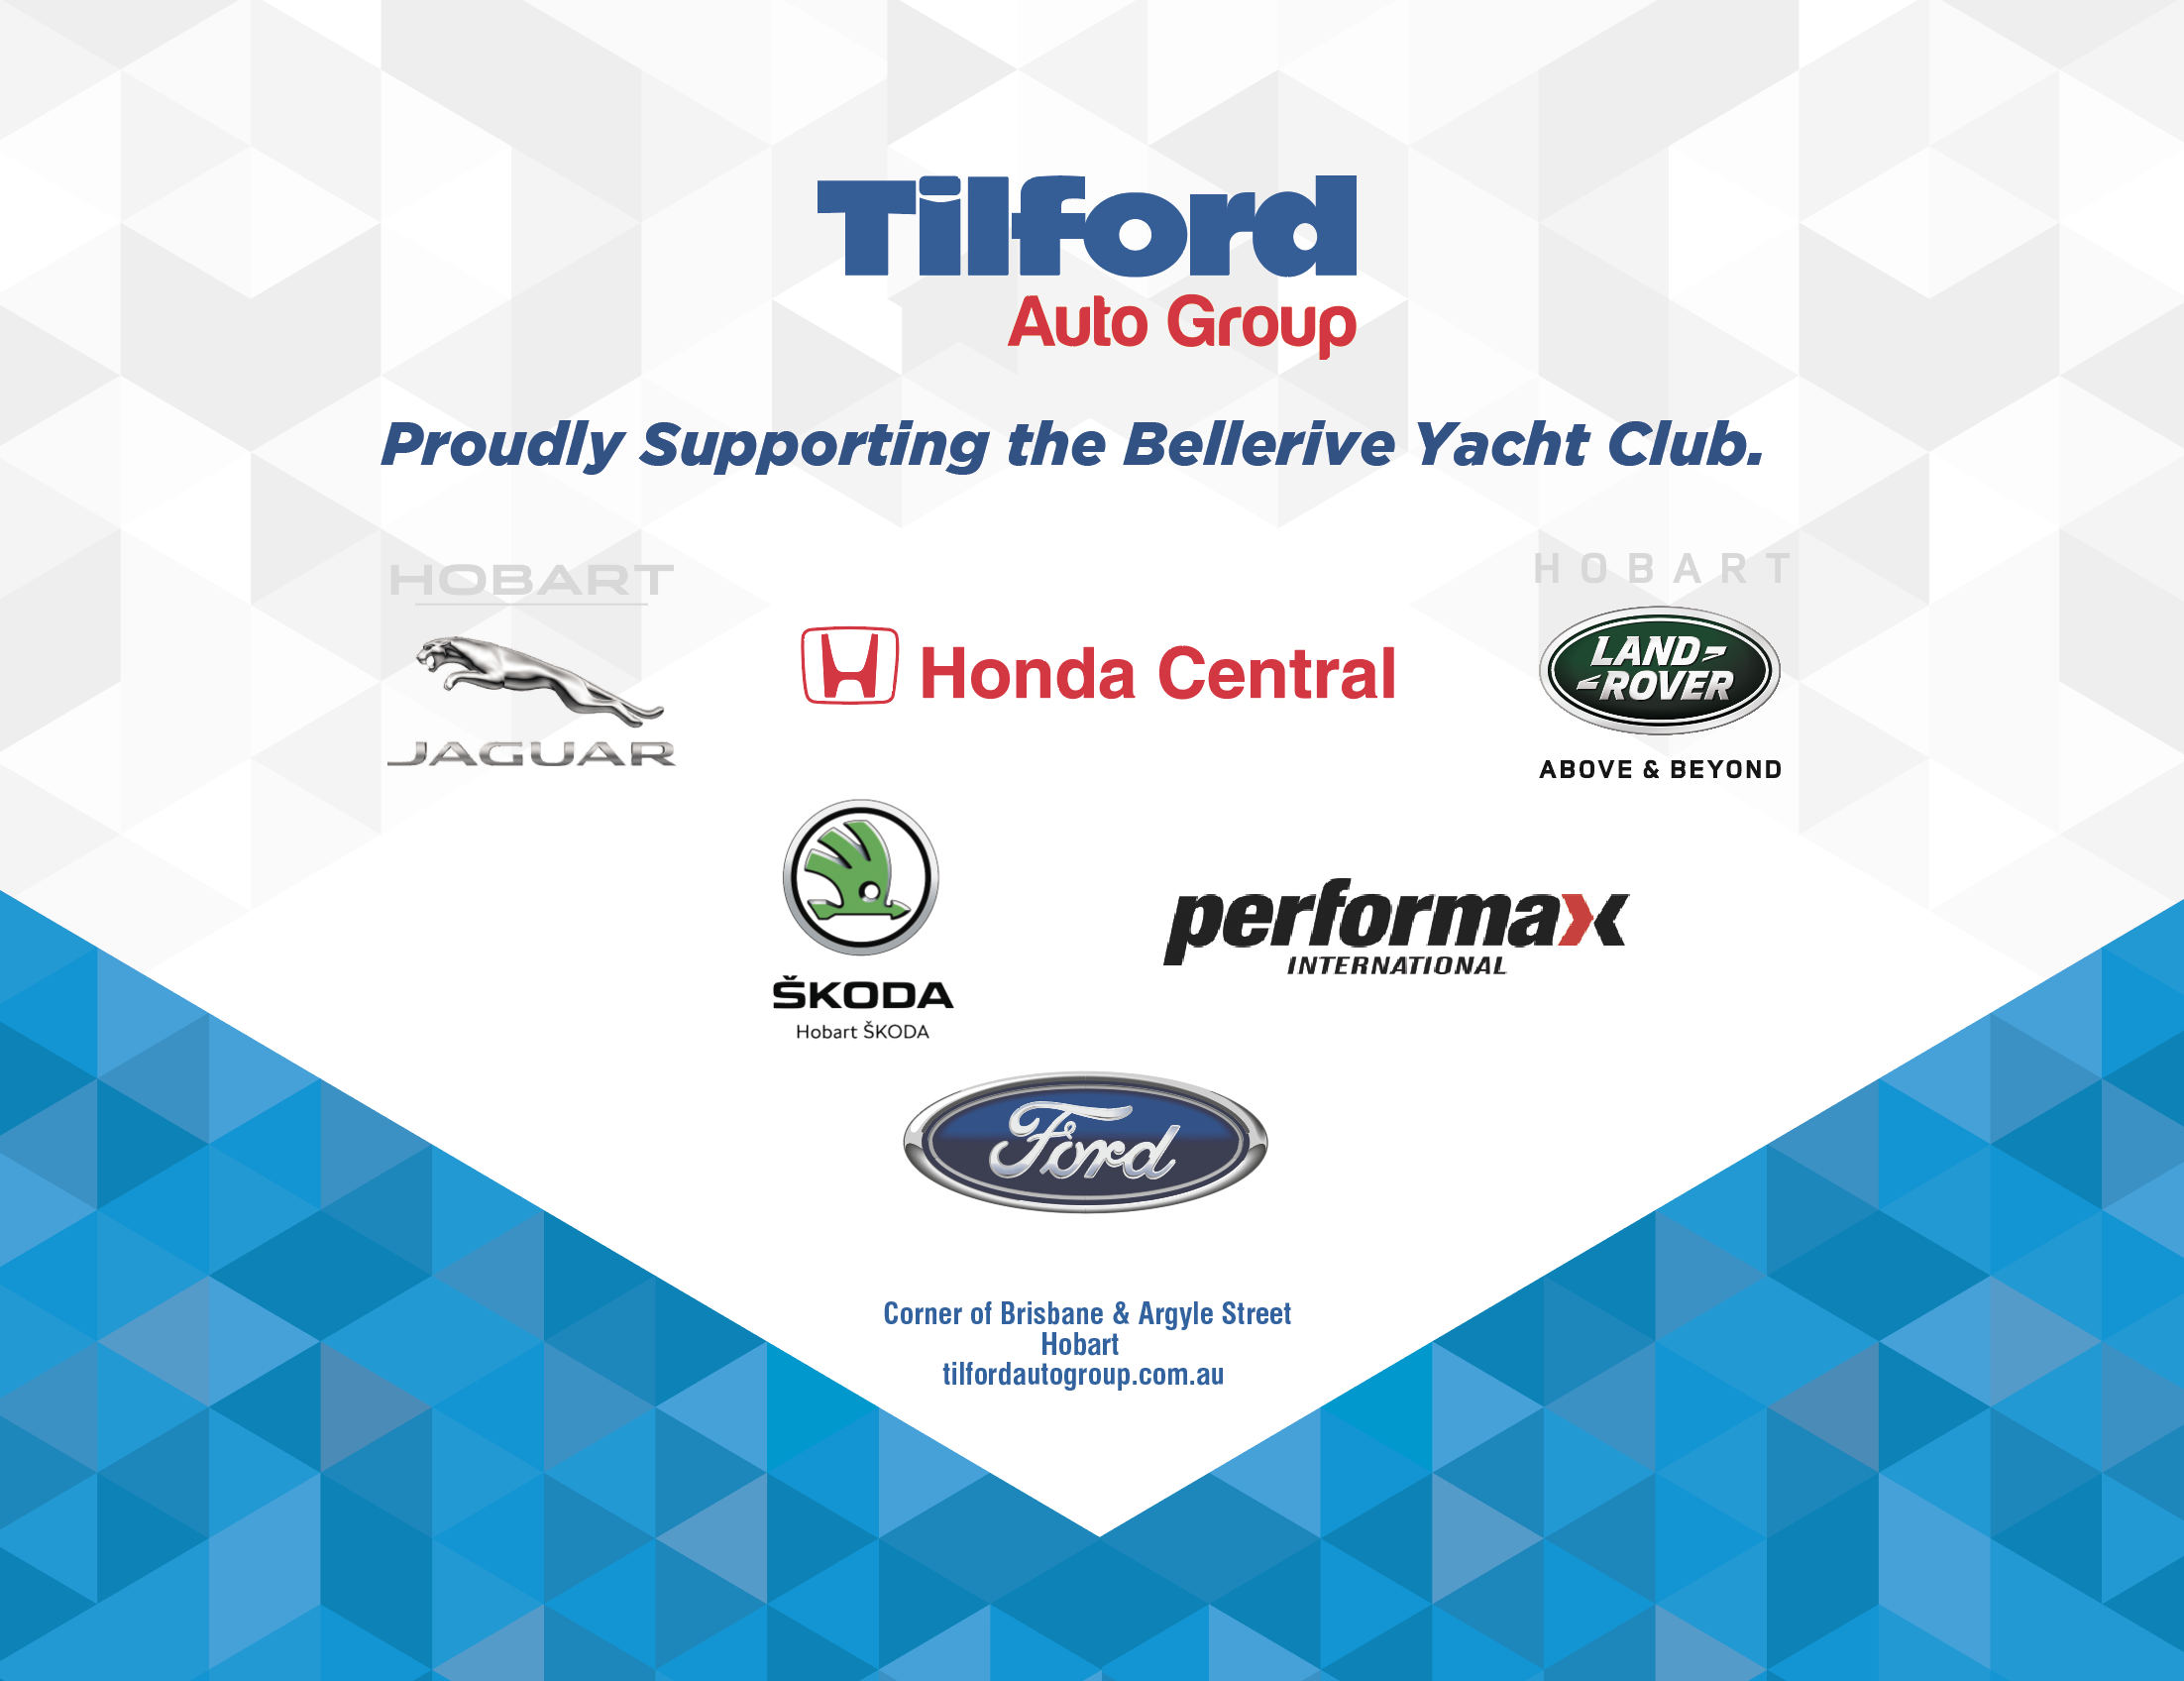 Tilford Auto Group